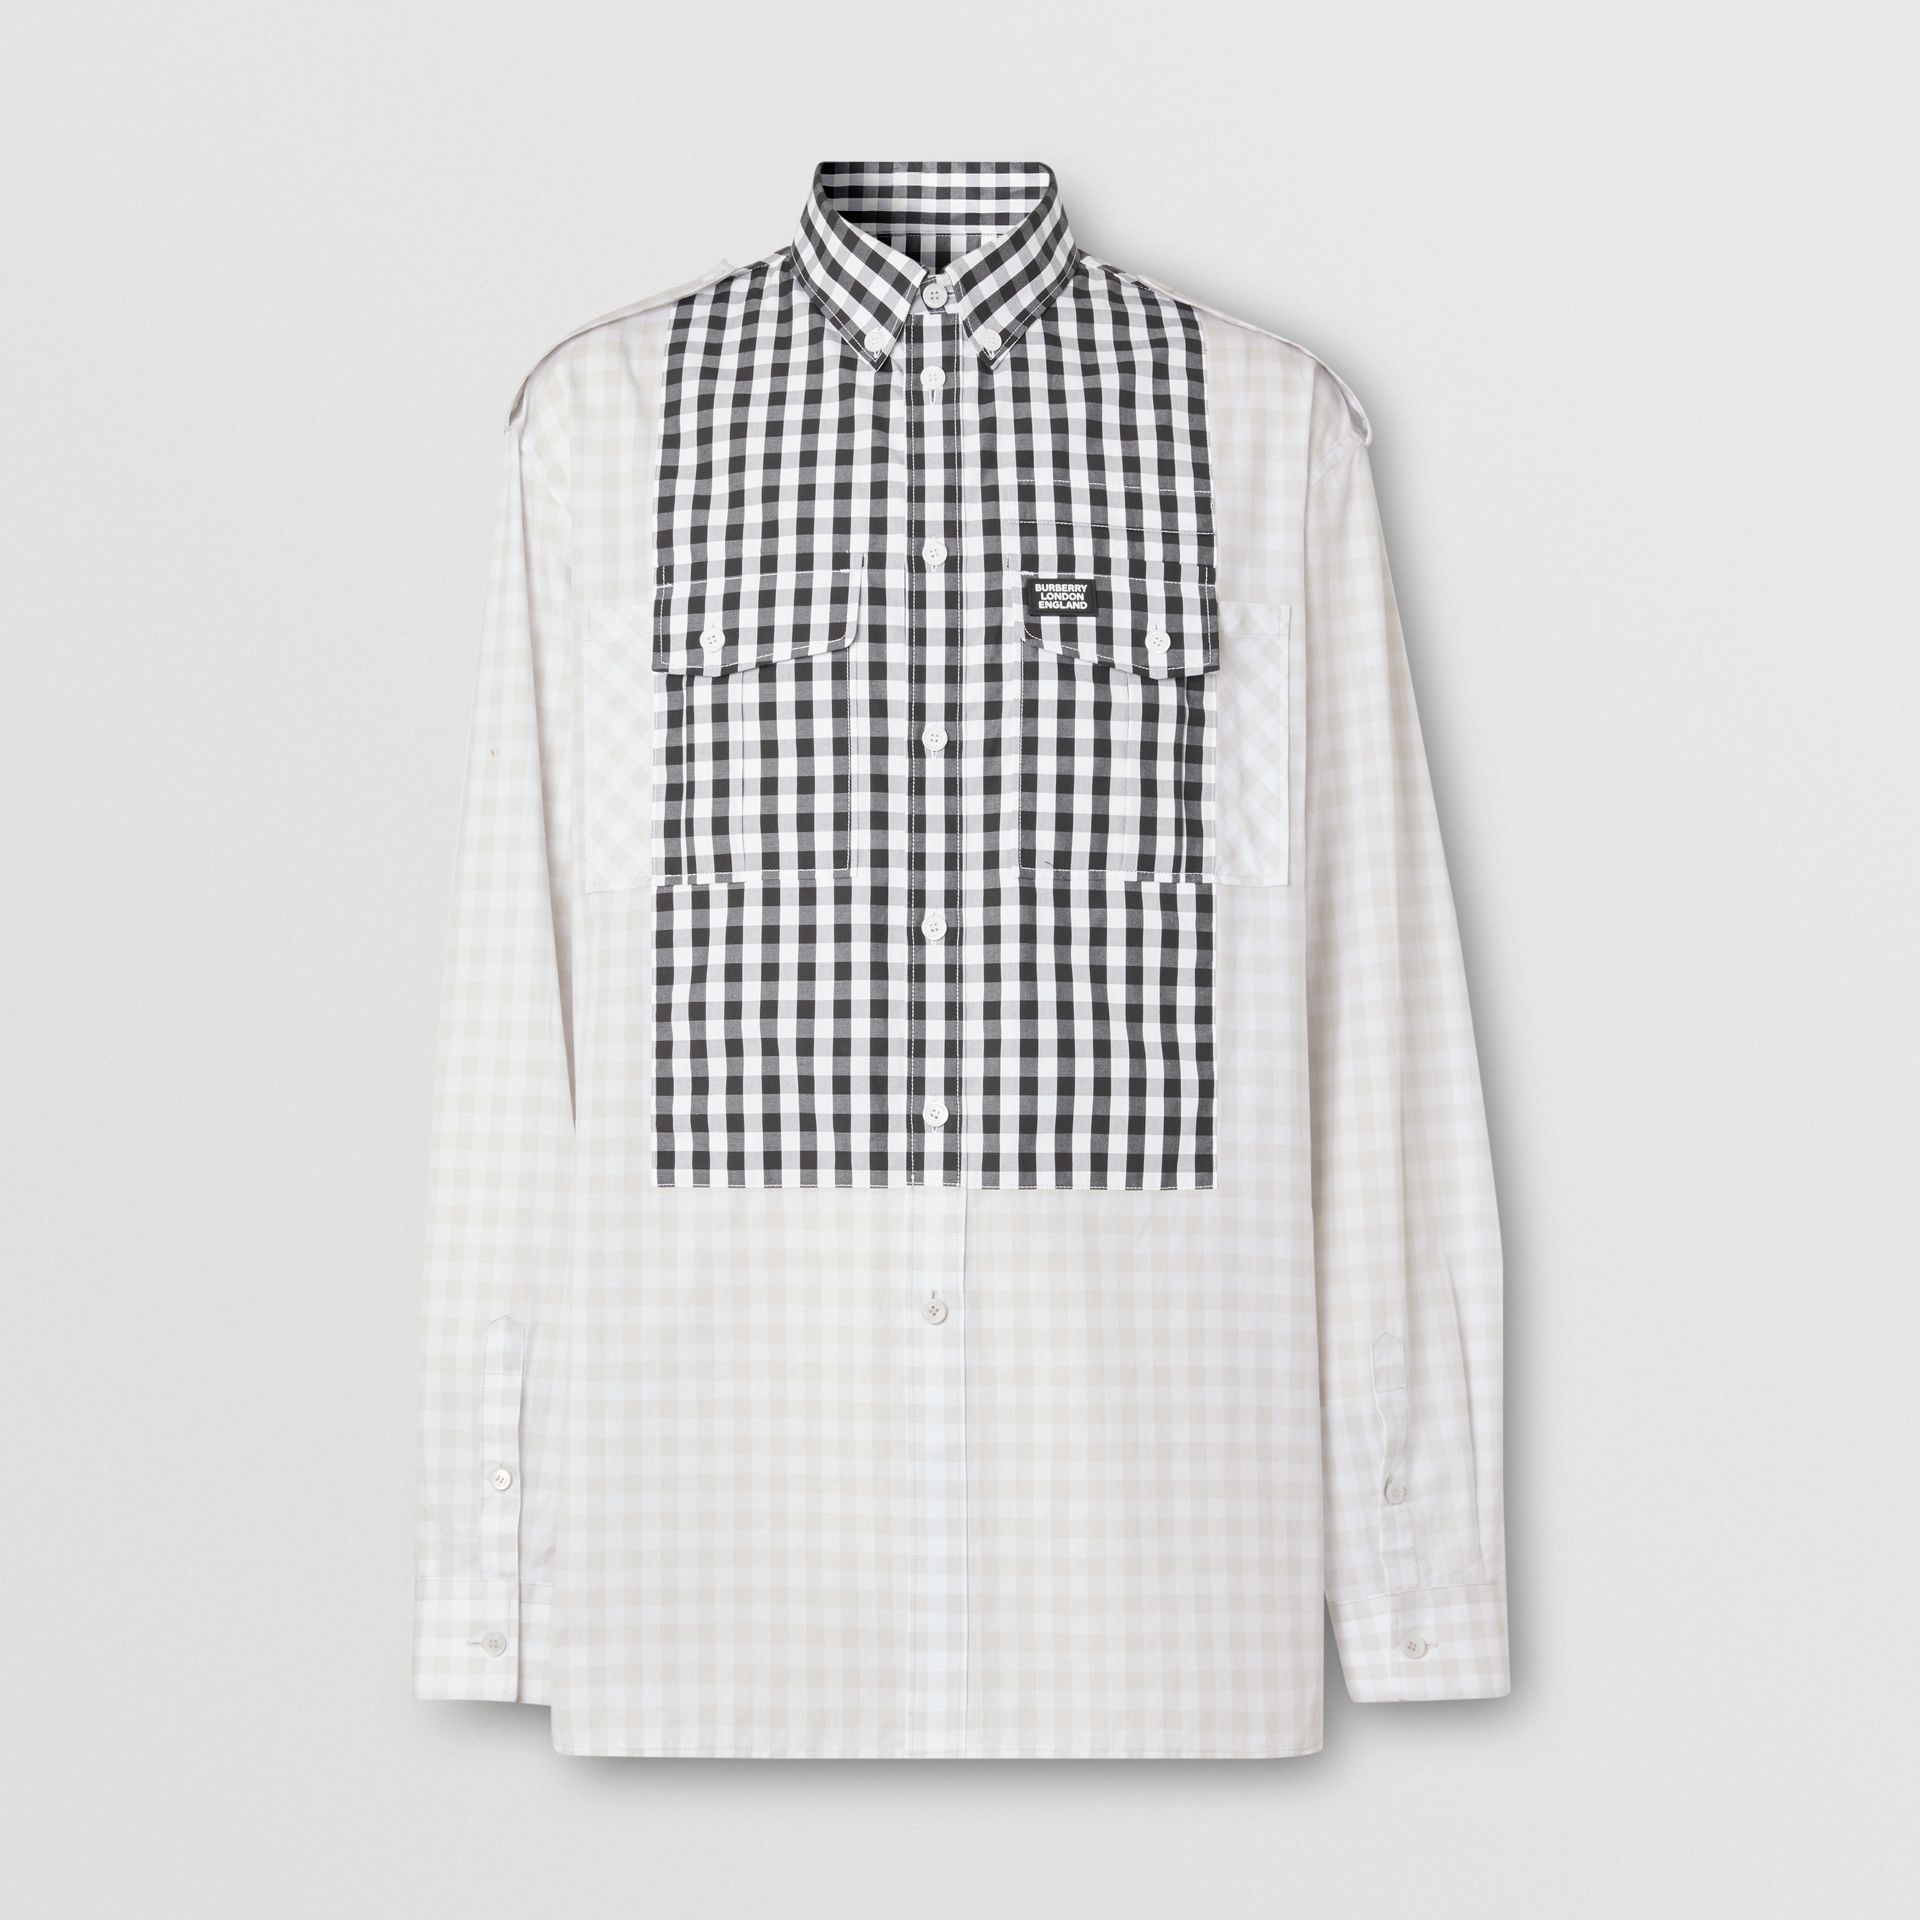 Contrast Bib Gingham Cotton Poplin Oversized Shirt in Light Pebble Grey | Burberry - gallery image 3